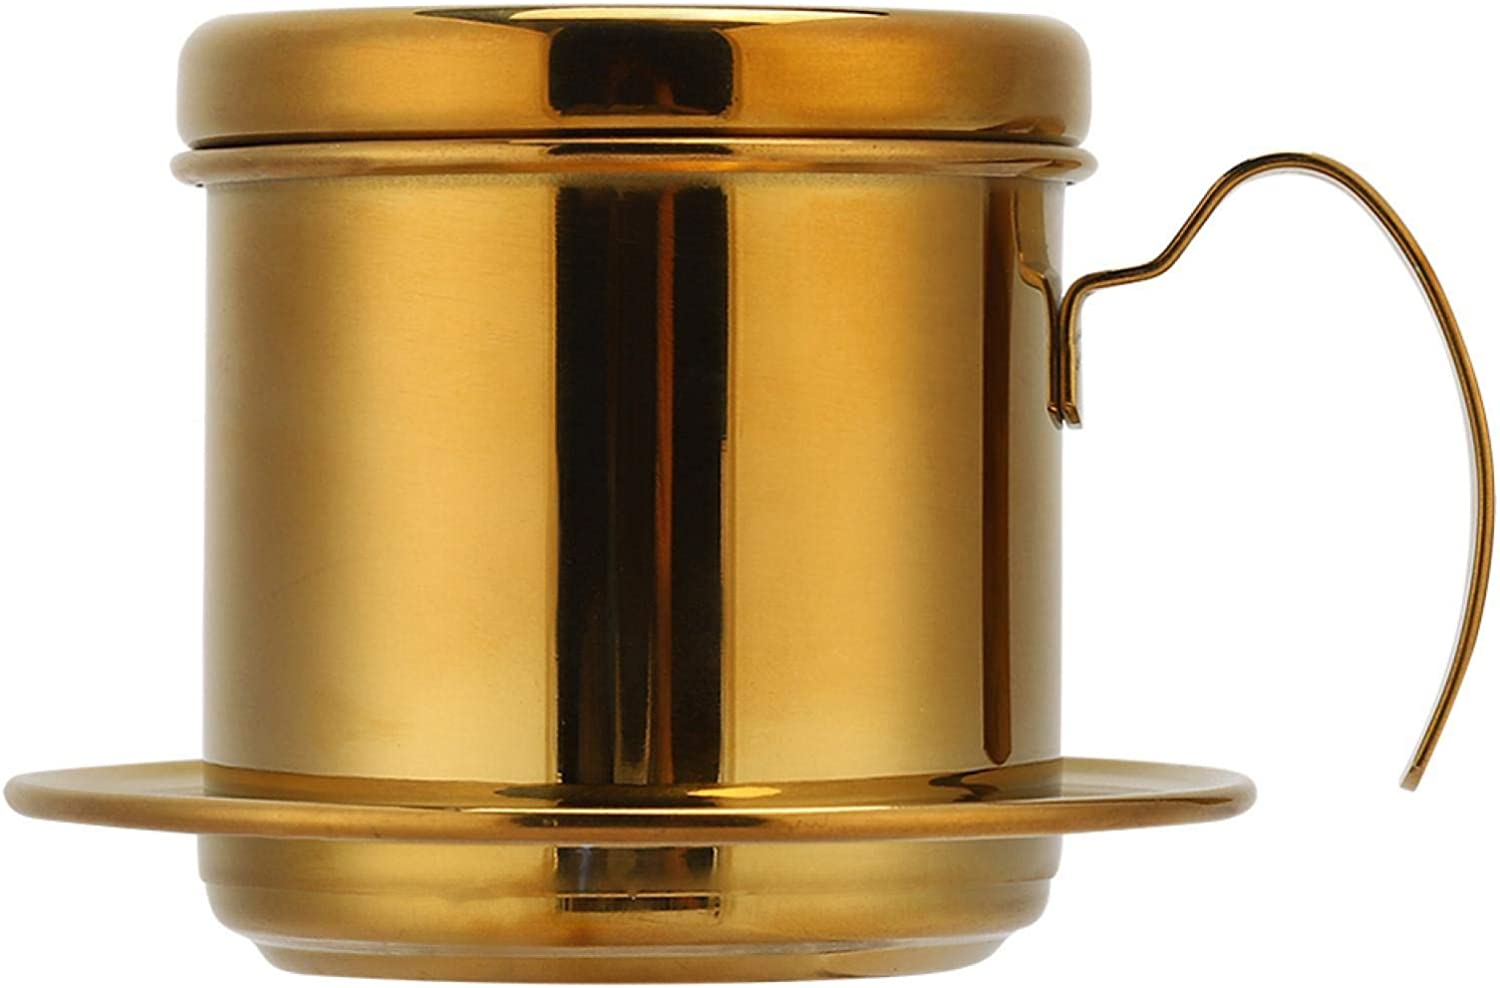 Stainless Steel Coffee Maker Pot Resistant Rust Some NEW reservation